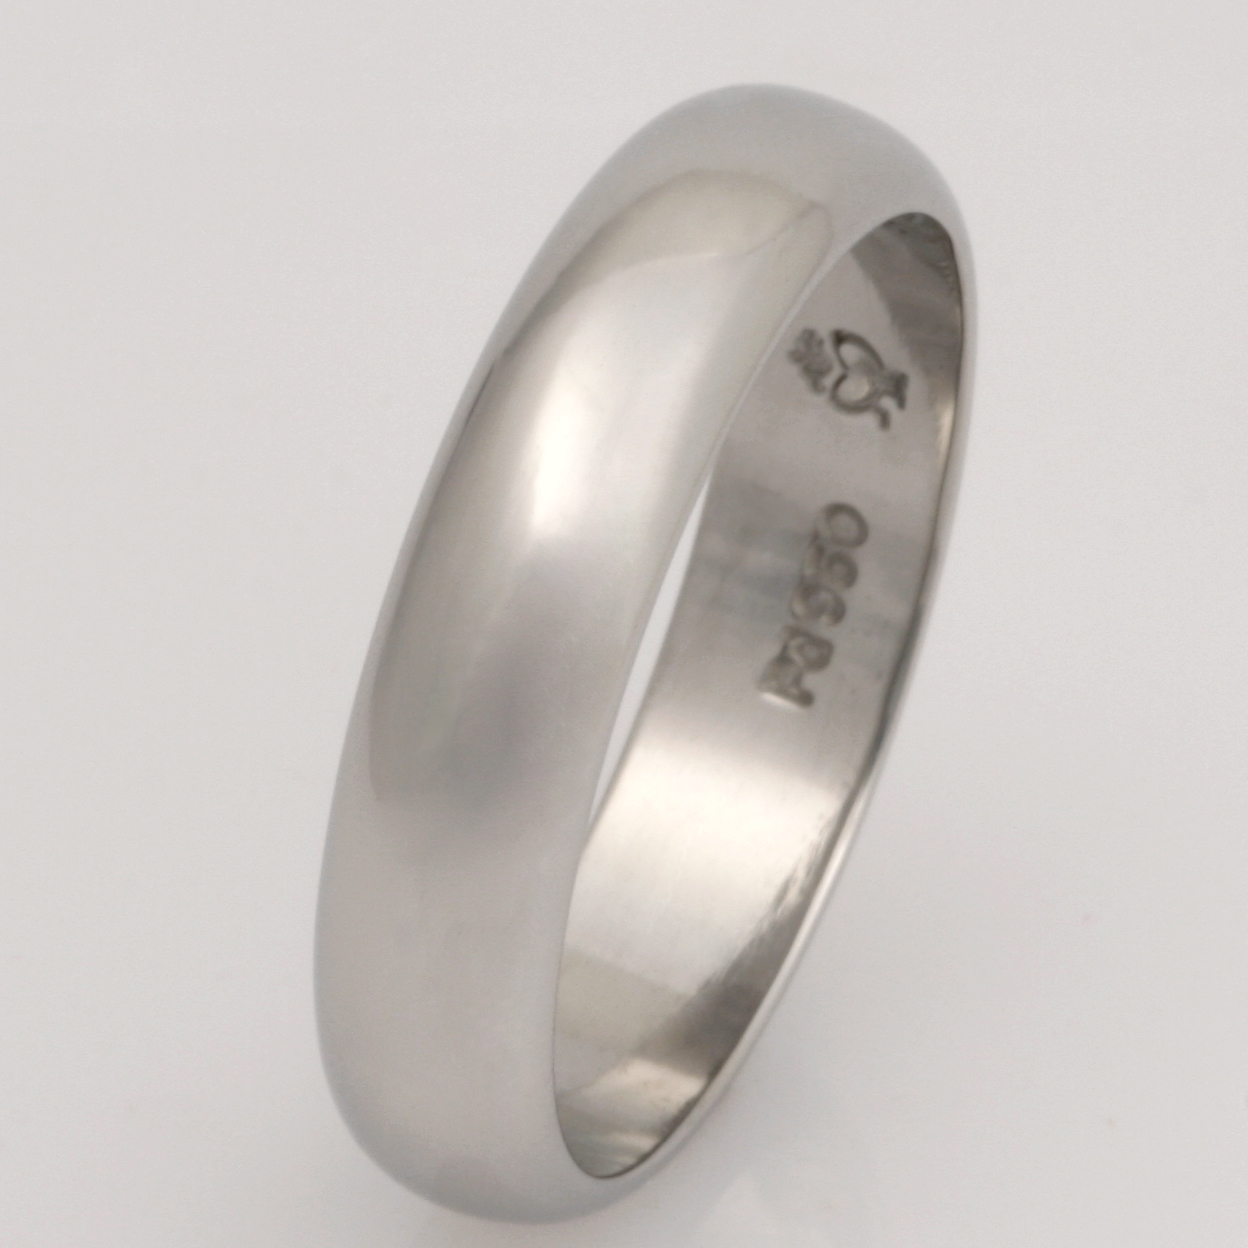 Handmade mens palladium wedding ring